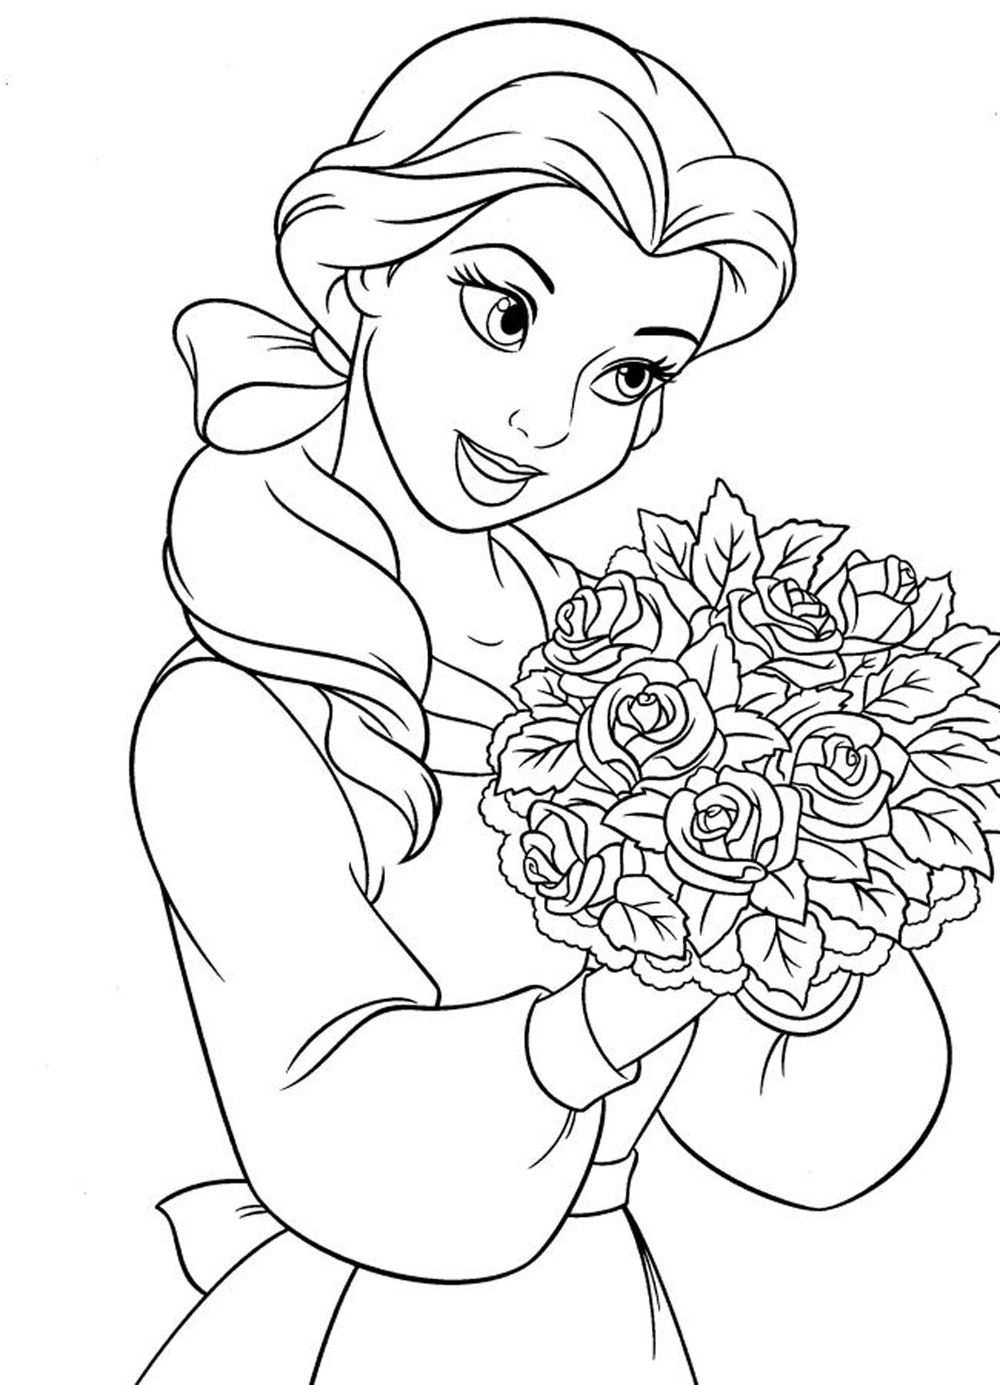 Princess Coloring Pages For Girls Free Large Images